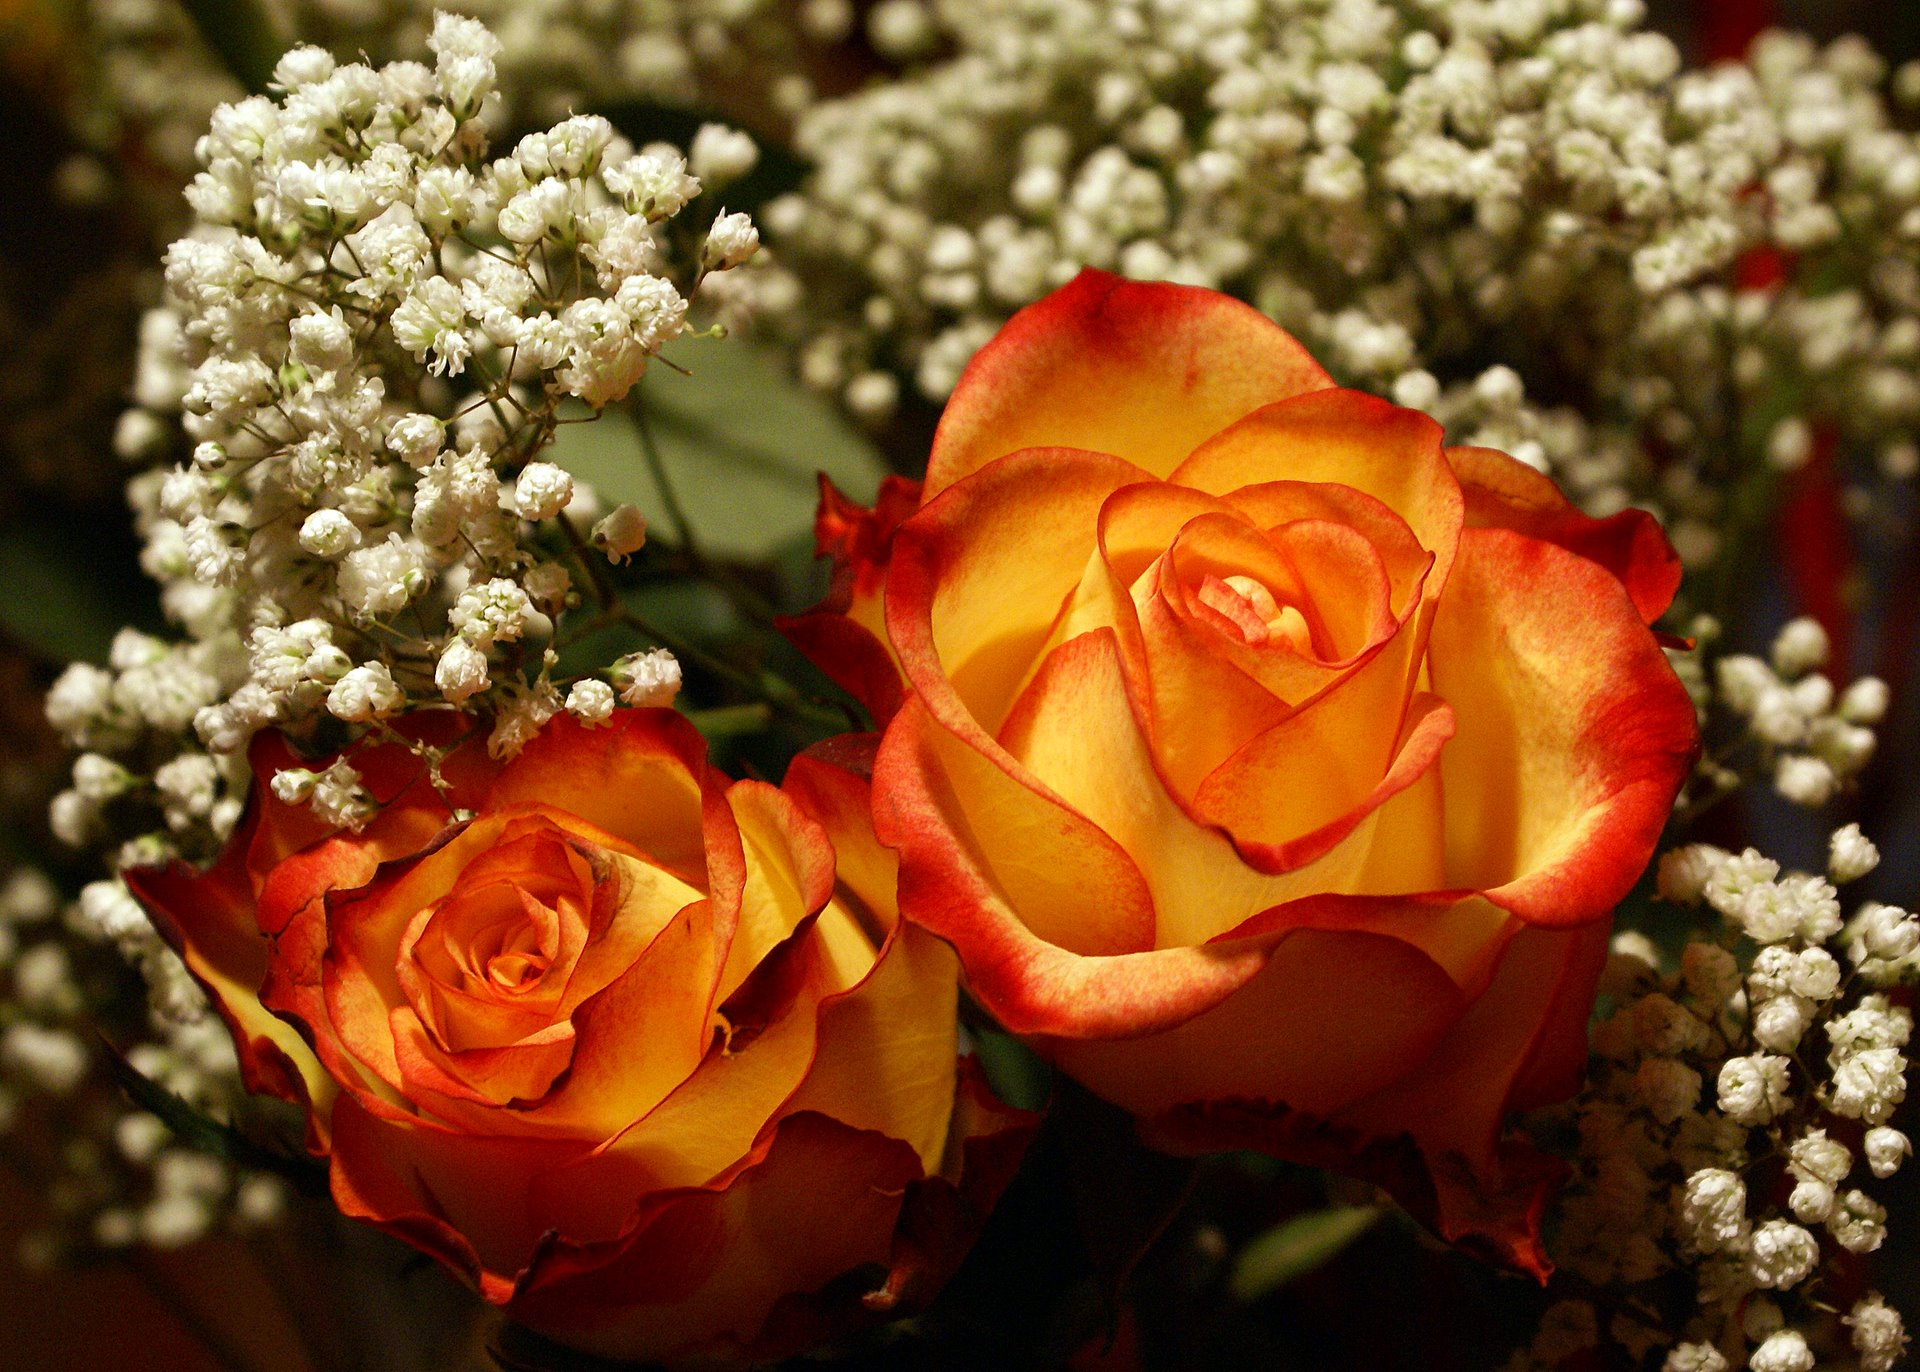 http://www.fabiovisentin.com/photography/photo/17/most-beautiful-red-yellow-rose-bouquet.jpg